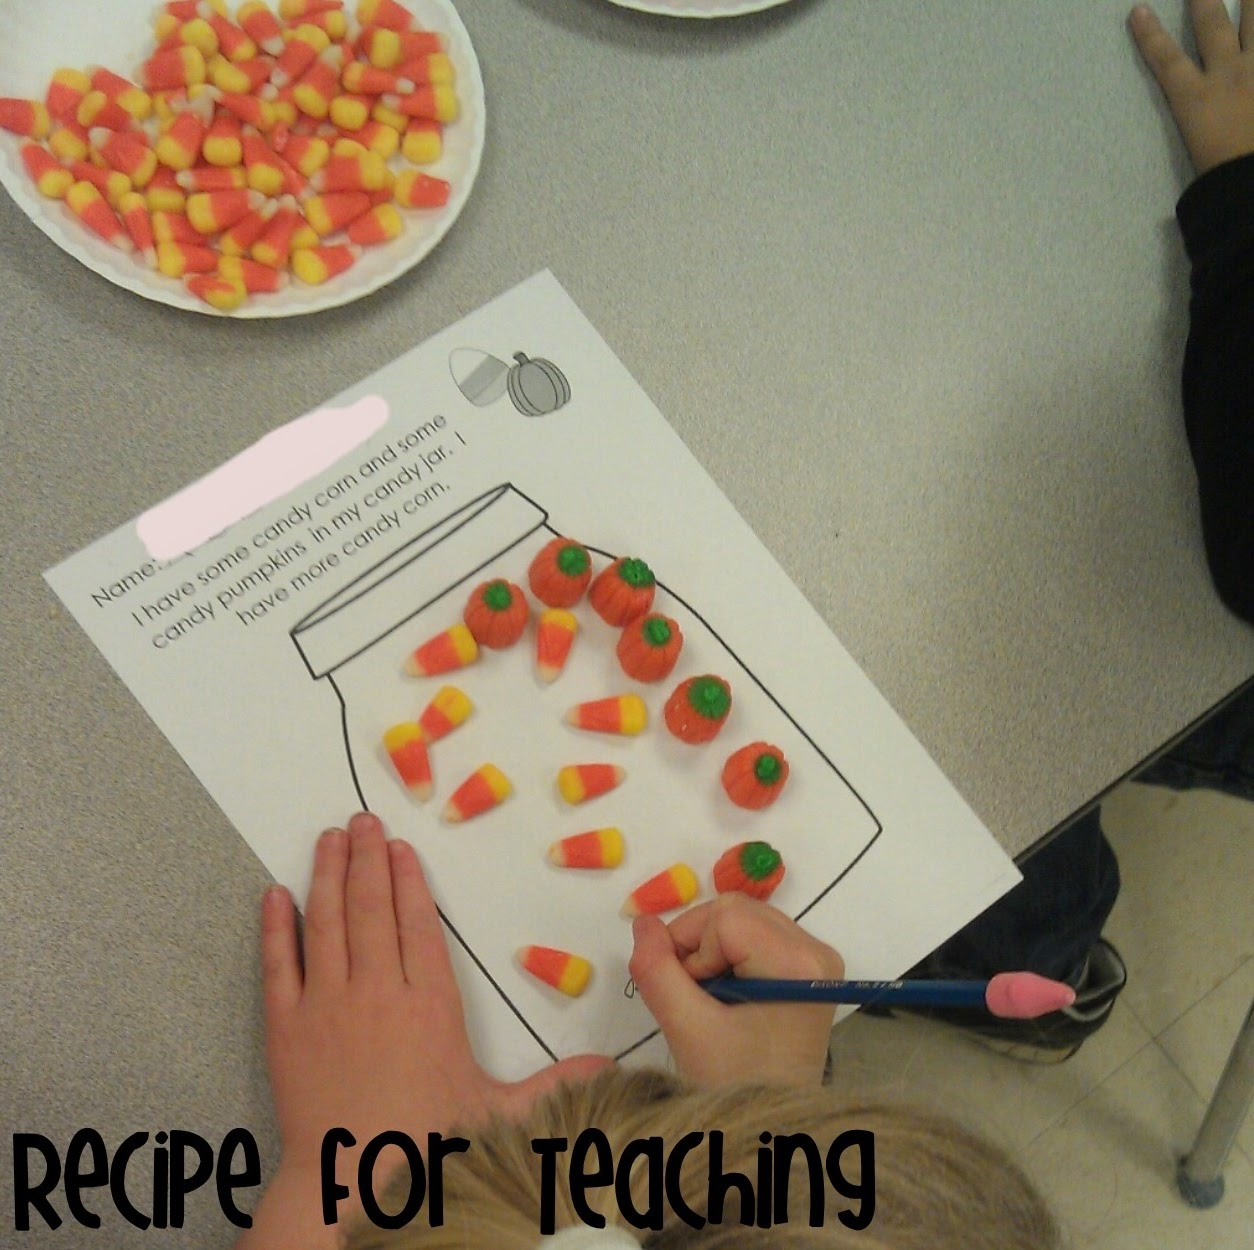 http://www.recipeforteaching.blogspot.com/2014/10/notice-and-wonder.html